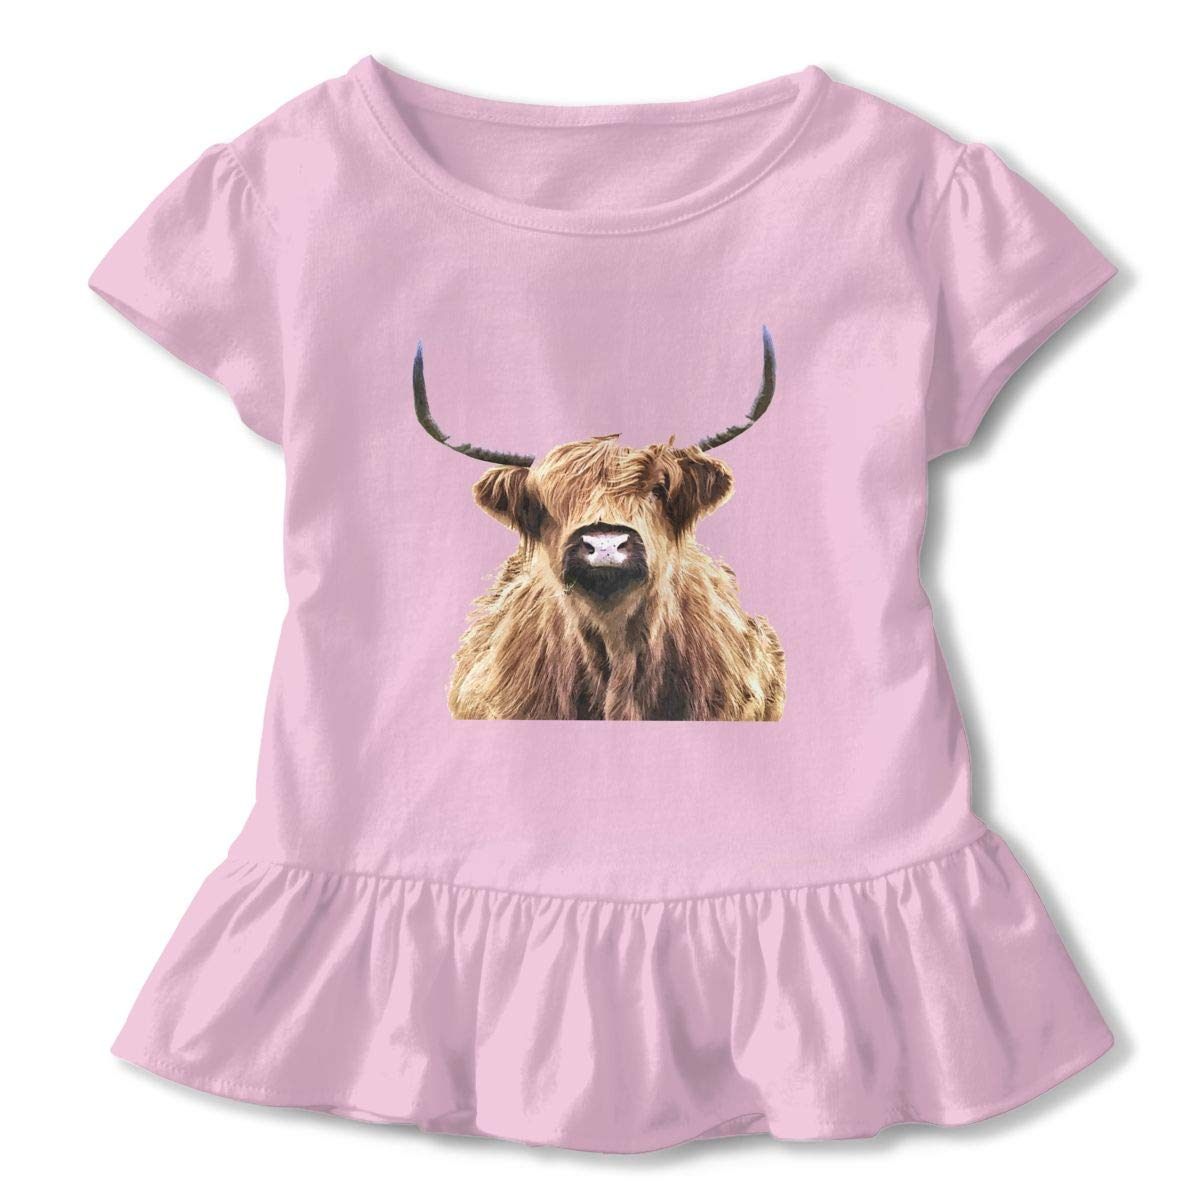 QUZtww Highland-cow-portrait905836-curtains Cute Adorable Printed Patterns Basic Ruffle Tee Shirts with Short Sleeves and O-Neck for Daily Party School Outside Playing Pink